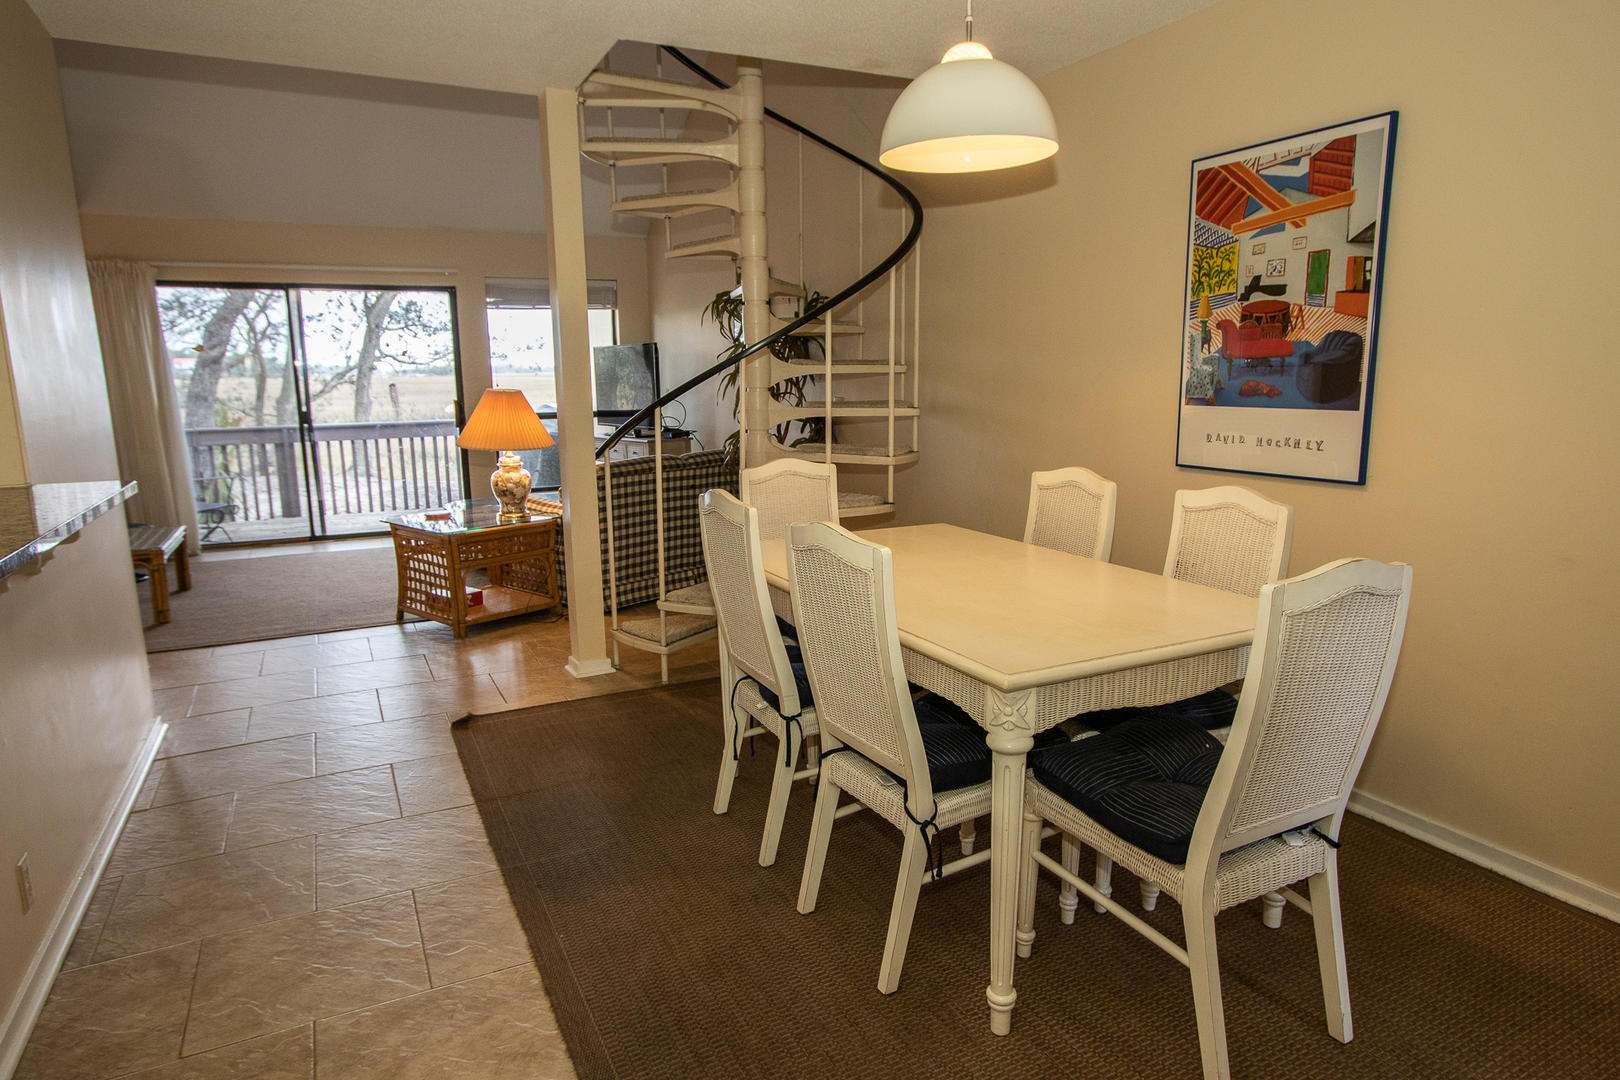 Dining, 6 seat table, next to kitchen